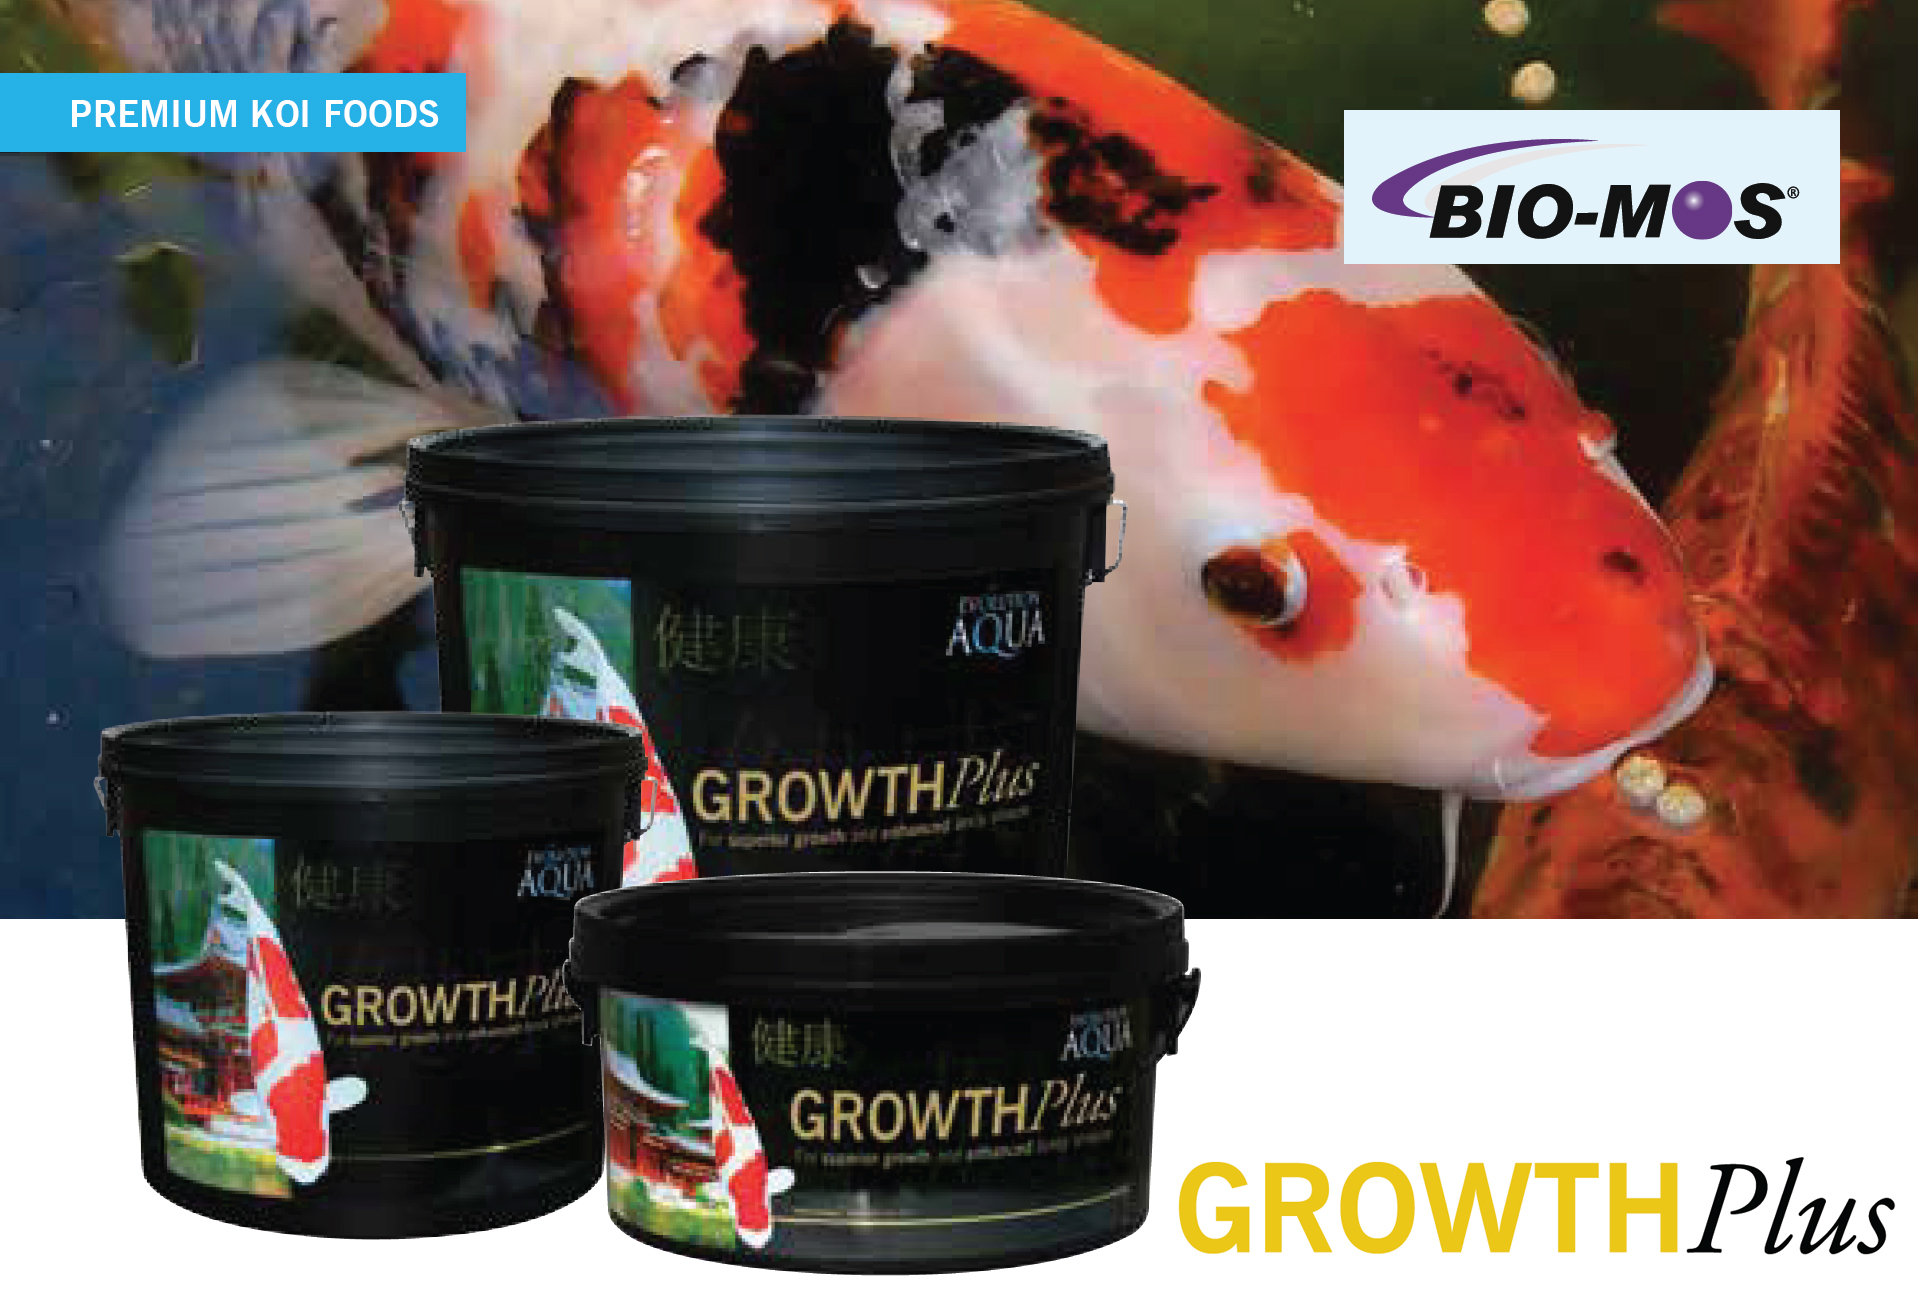 Evolution Aqua Growth Plus koi food, koi krmivo Grow Plus Evolution Aqua